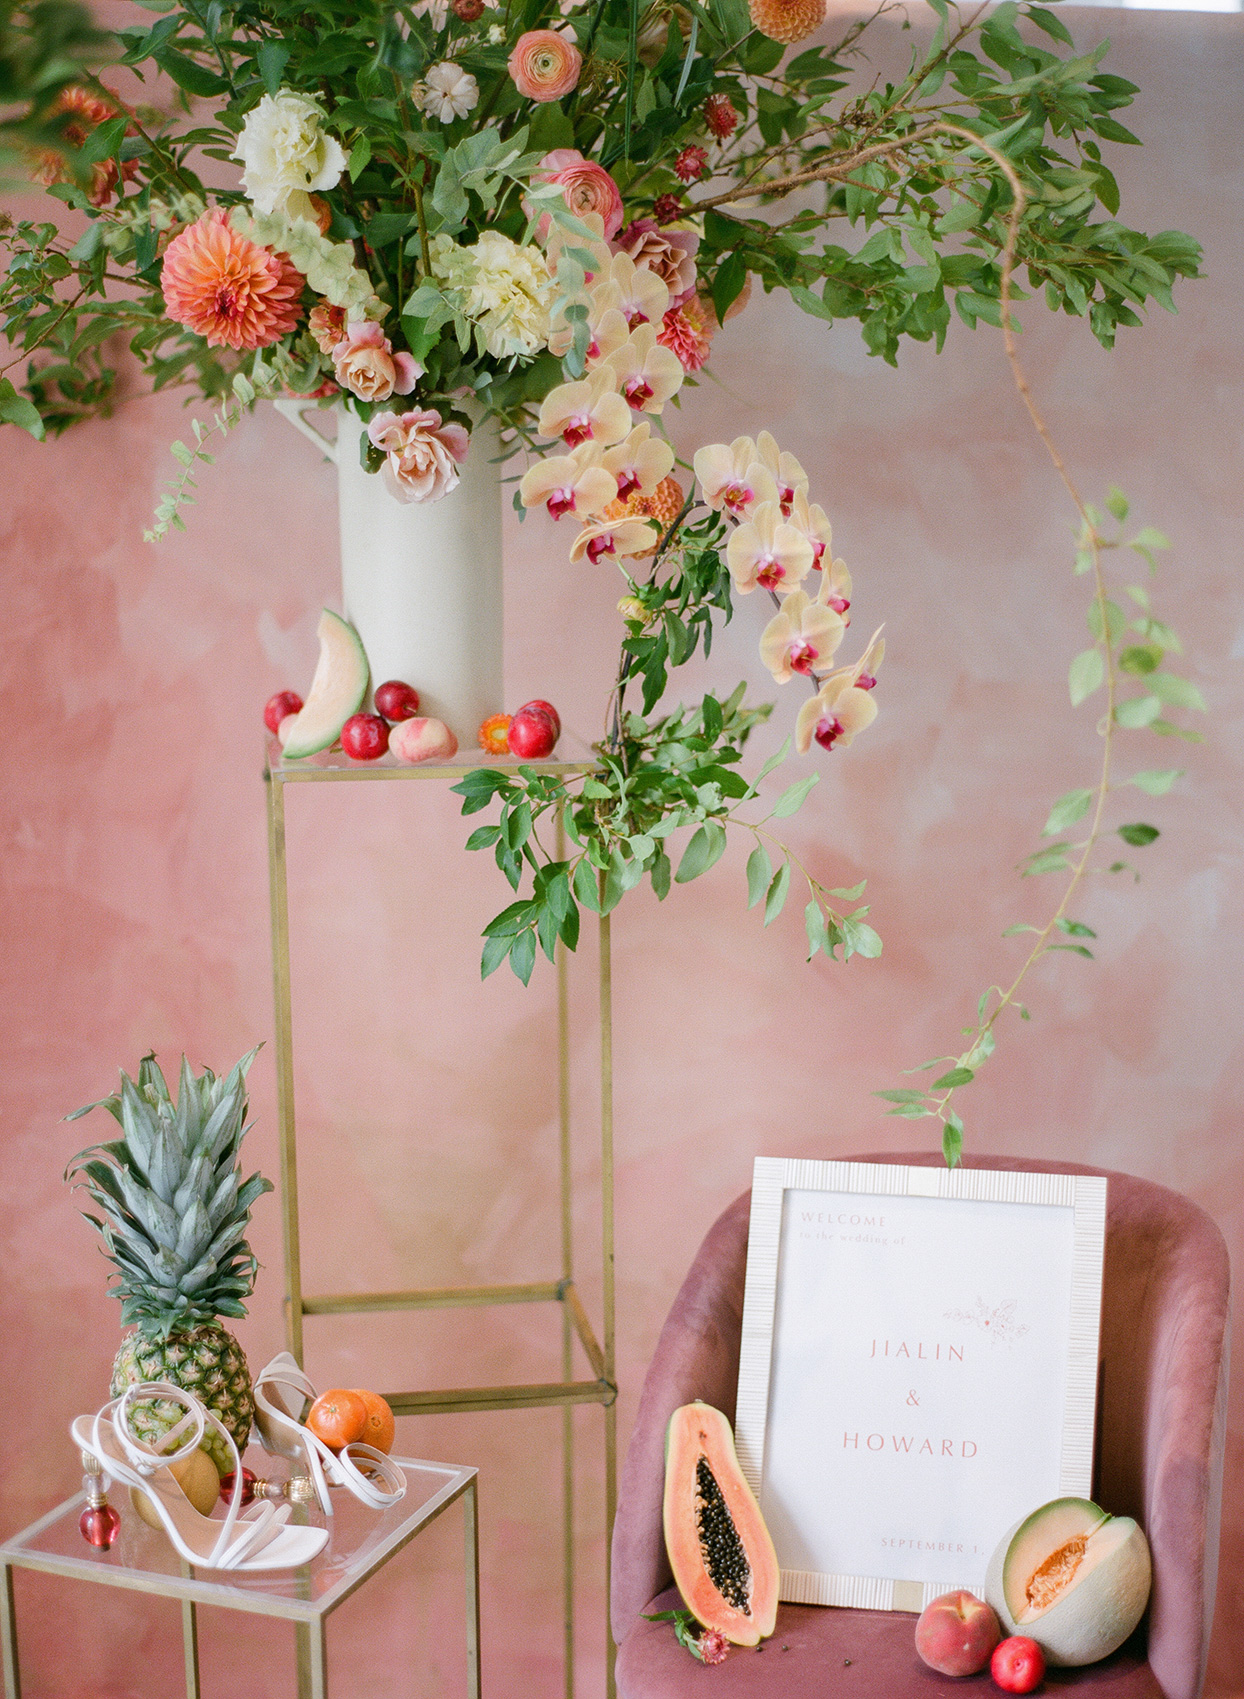 wedding welcome sign on blush chair with floral and fruit wedding decor